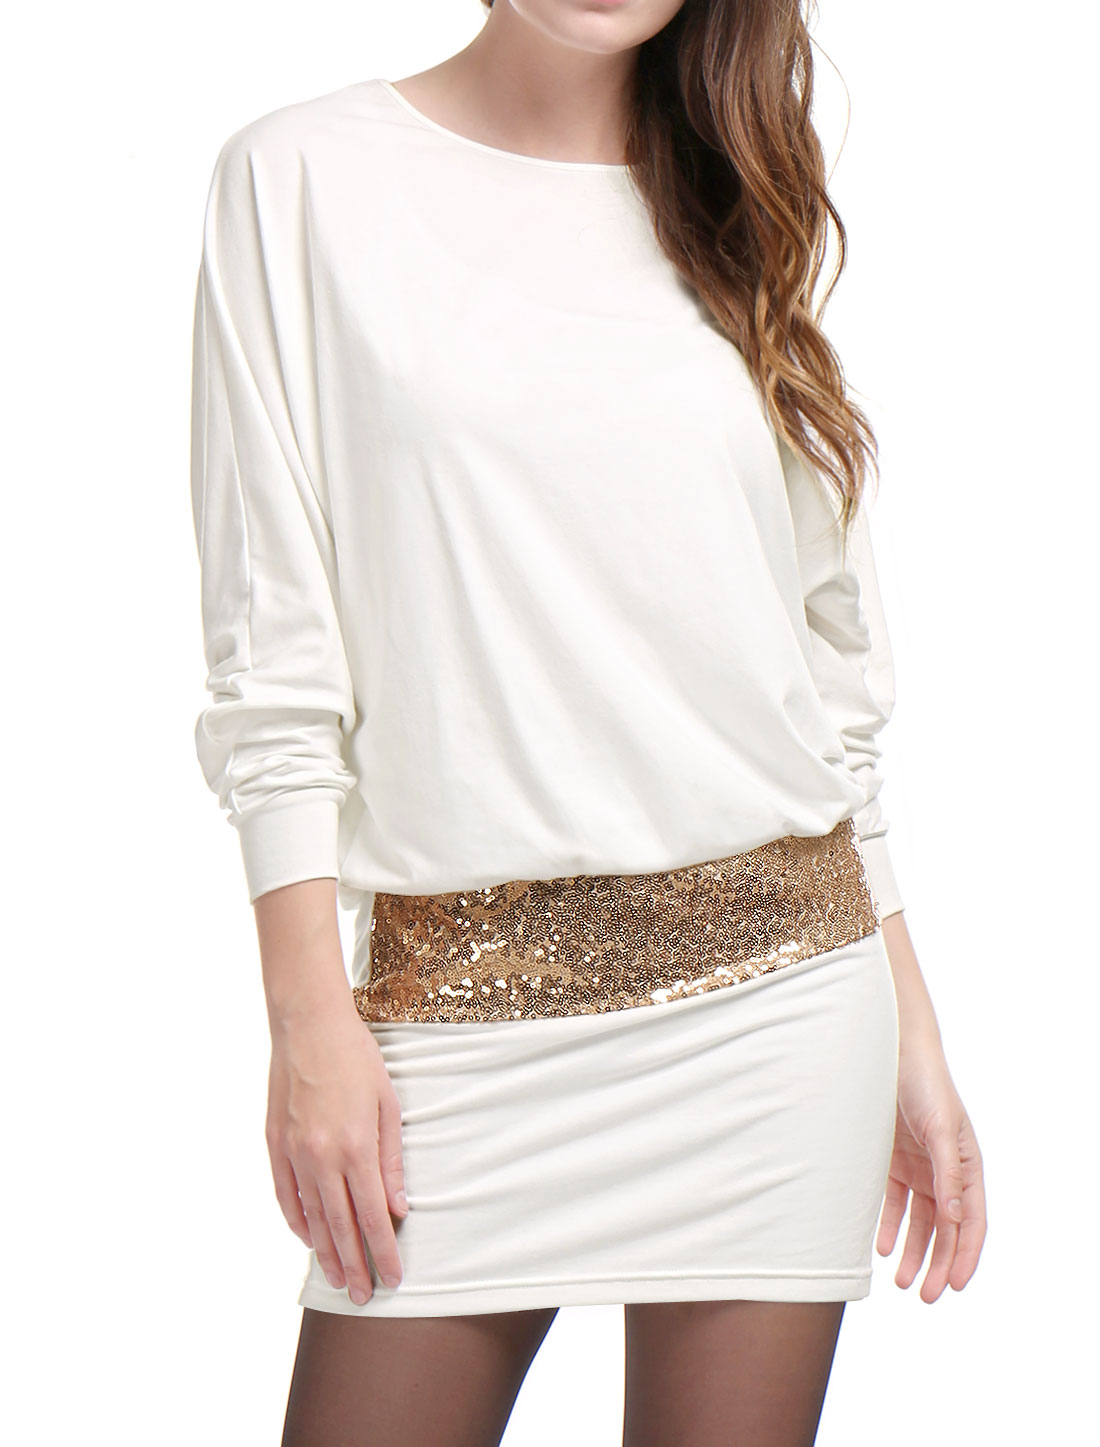 Allegra K Women Batwing Sleeves Sequins Accent Blouson Mini Dress White M